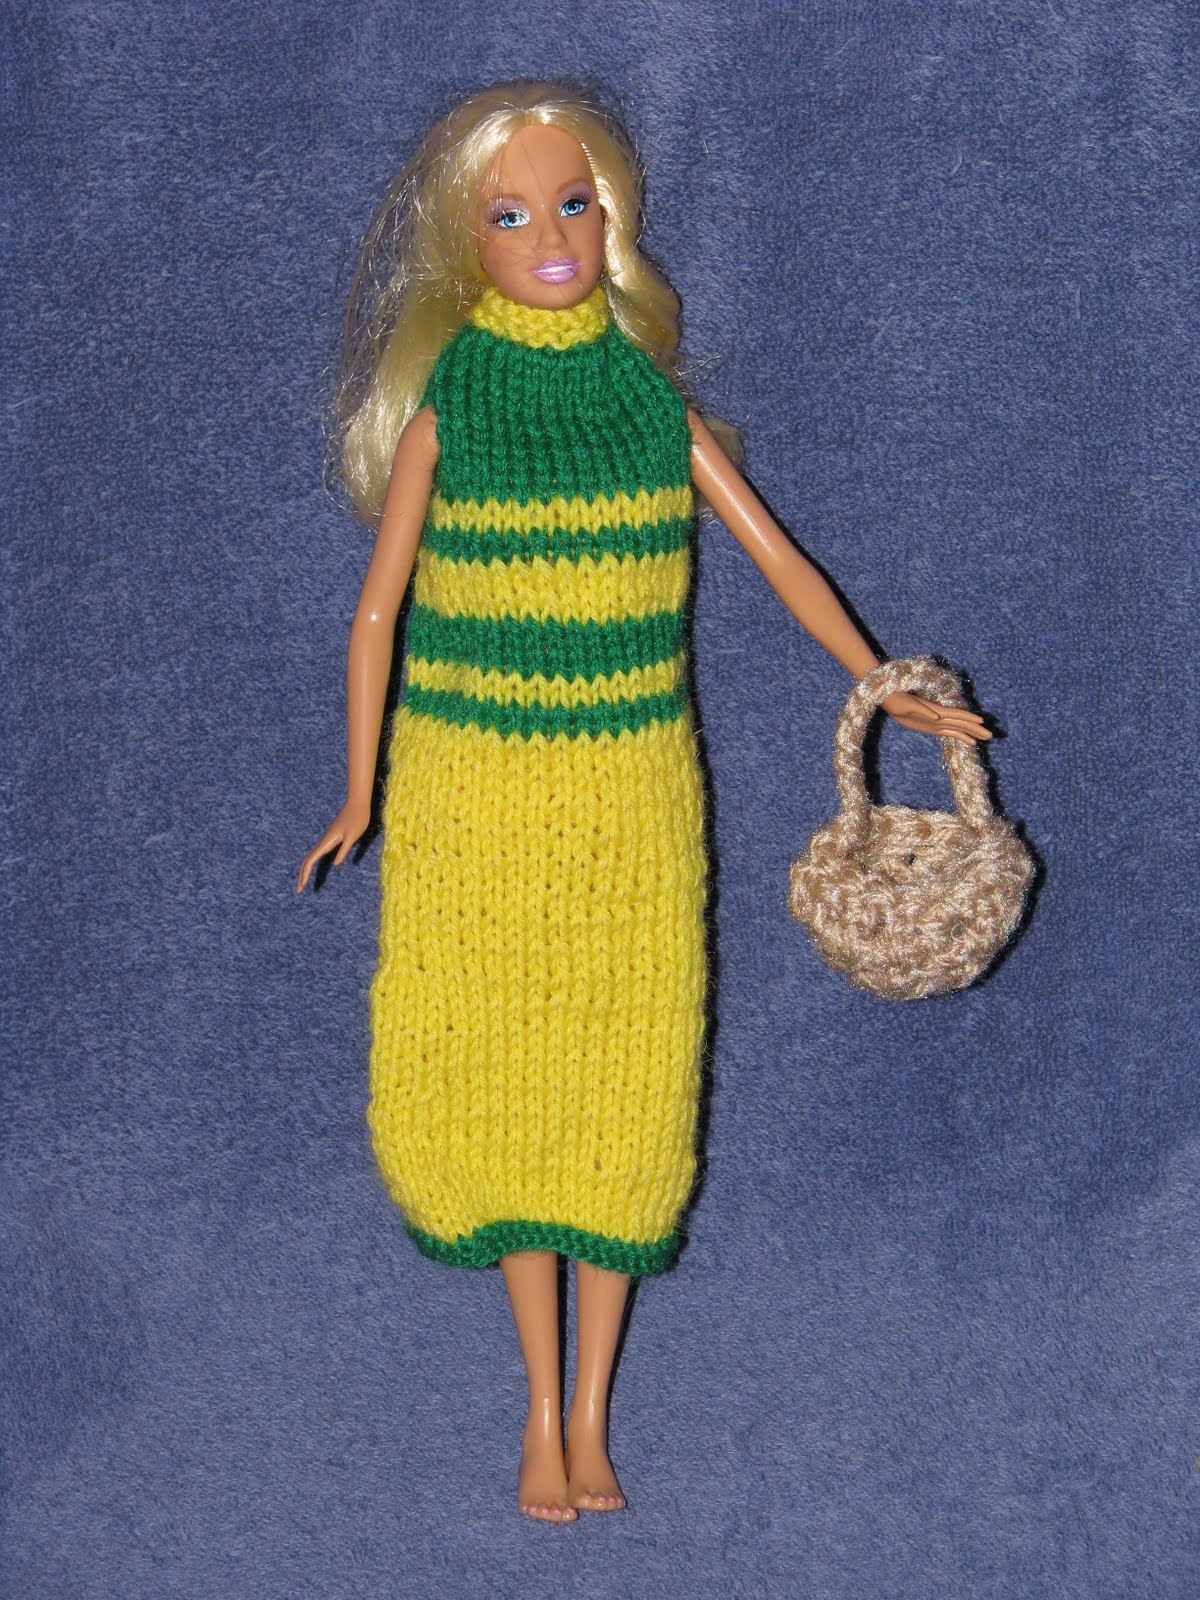 Barbie Collector Dolls: Free Crochet Doll Dress Patterns